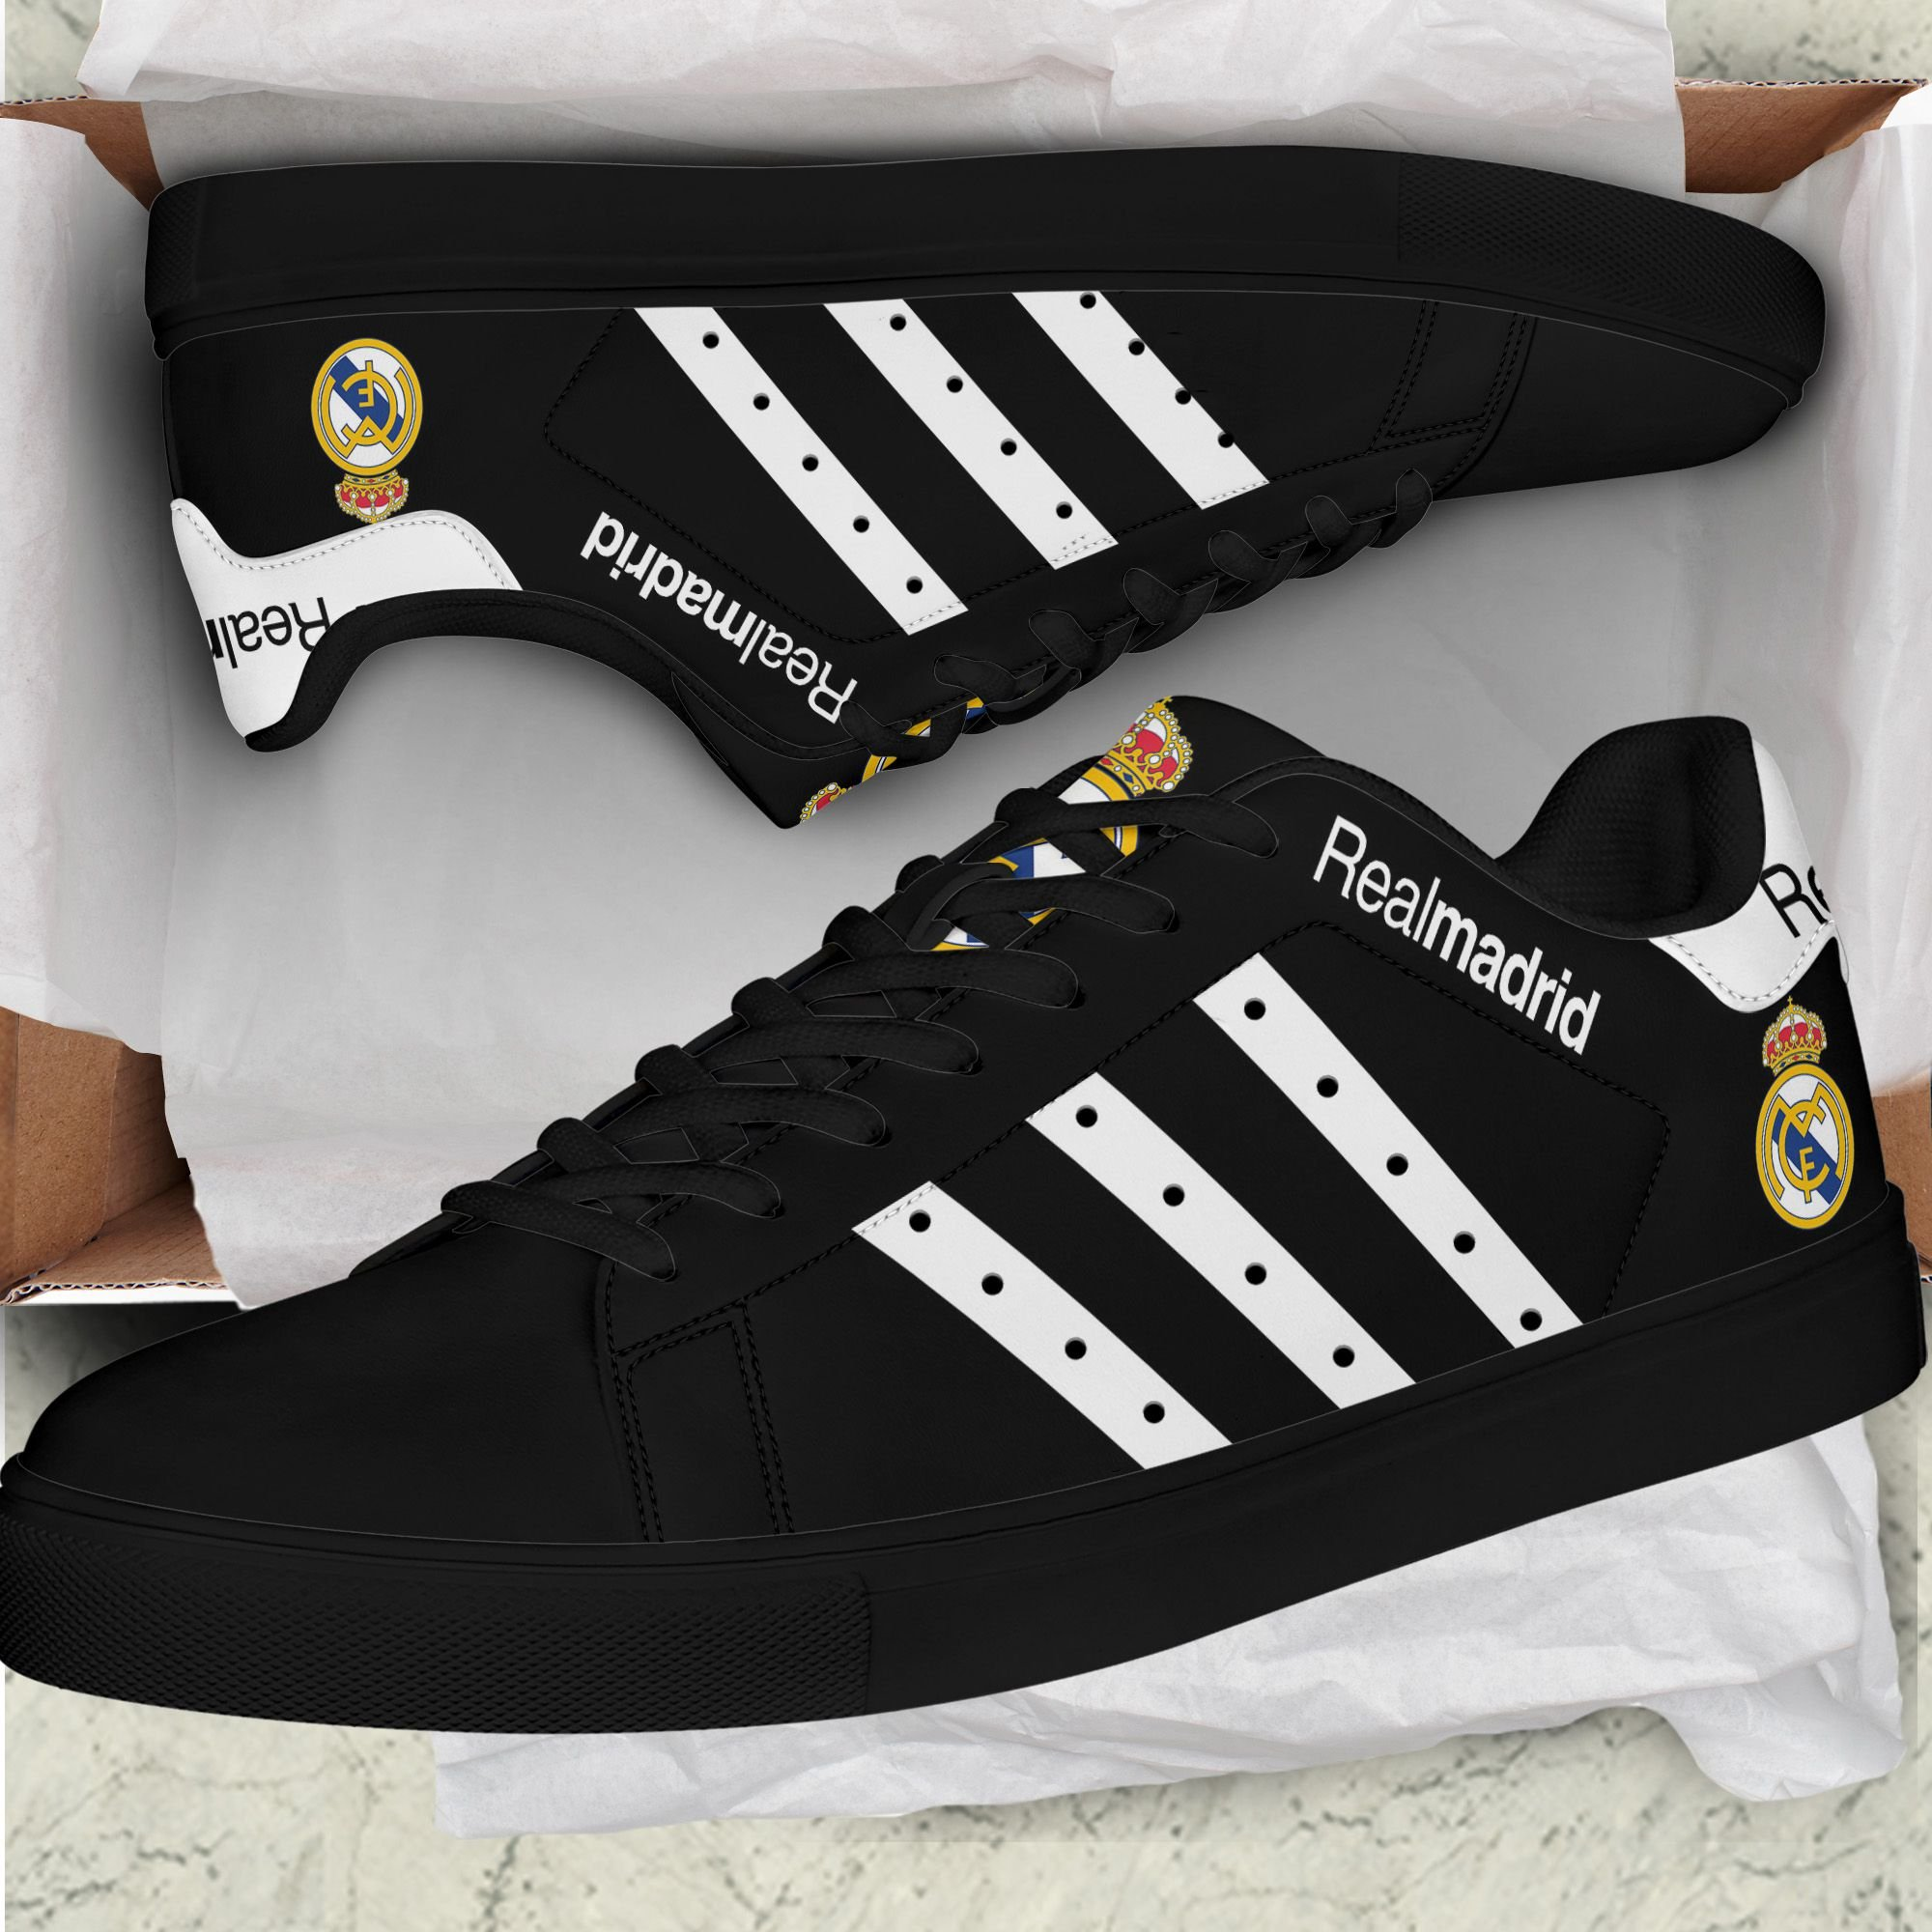 Real Madrid stan smith shoes